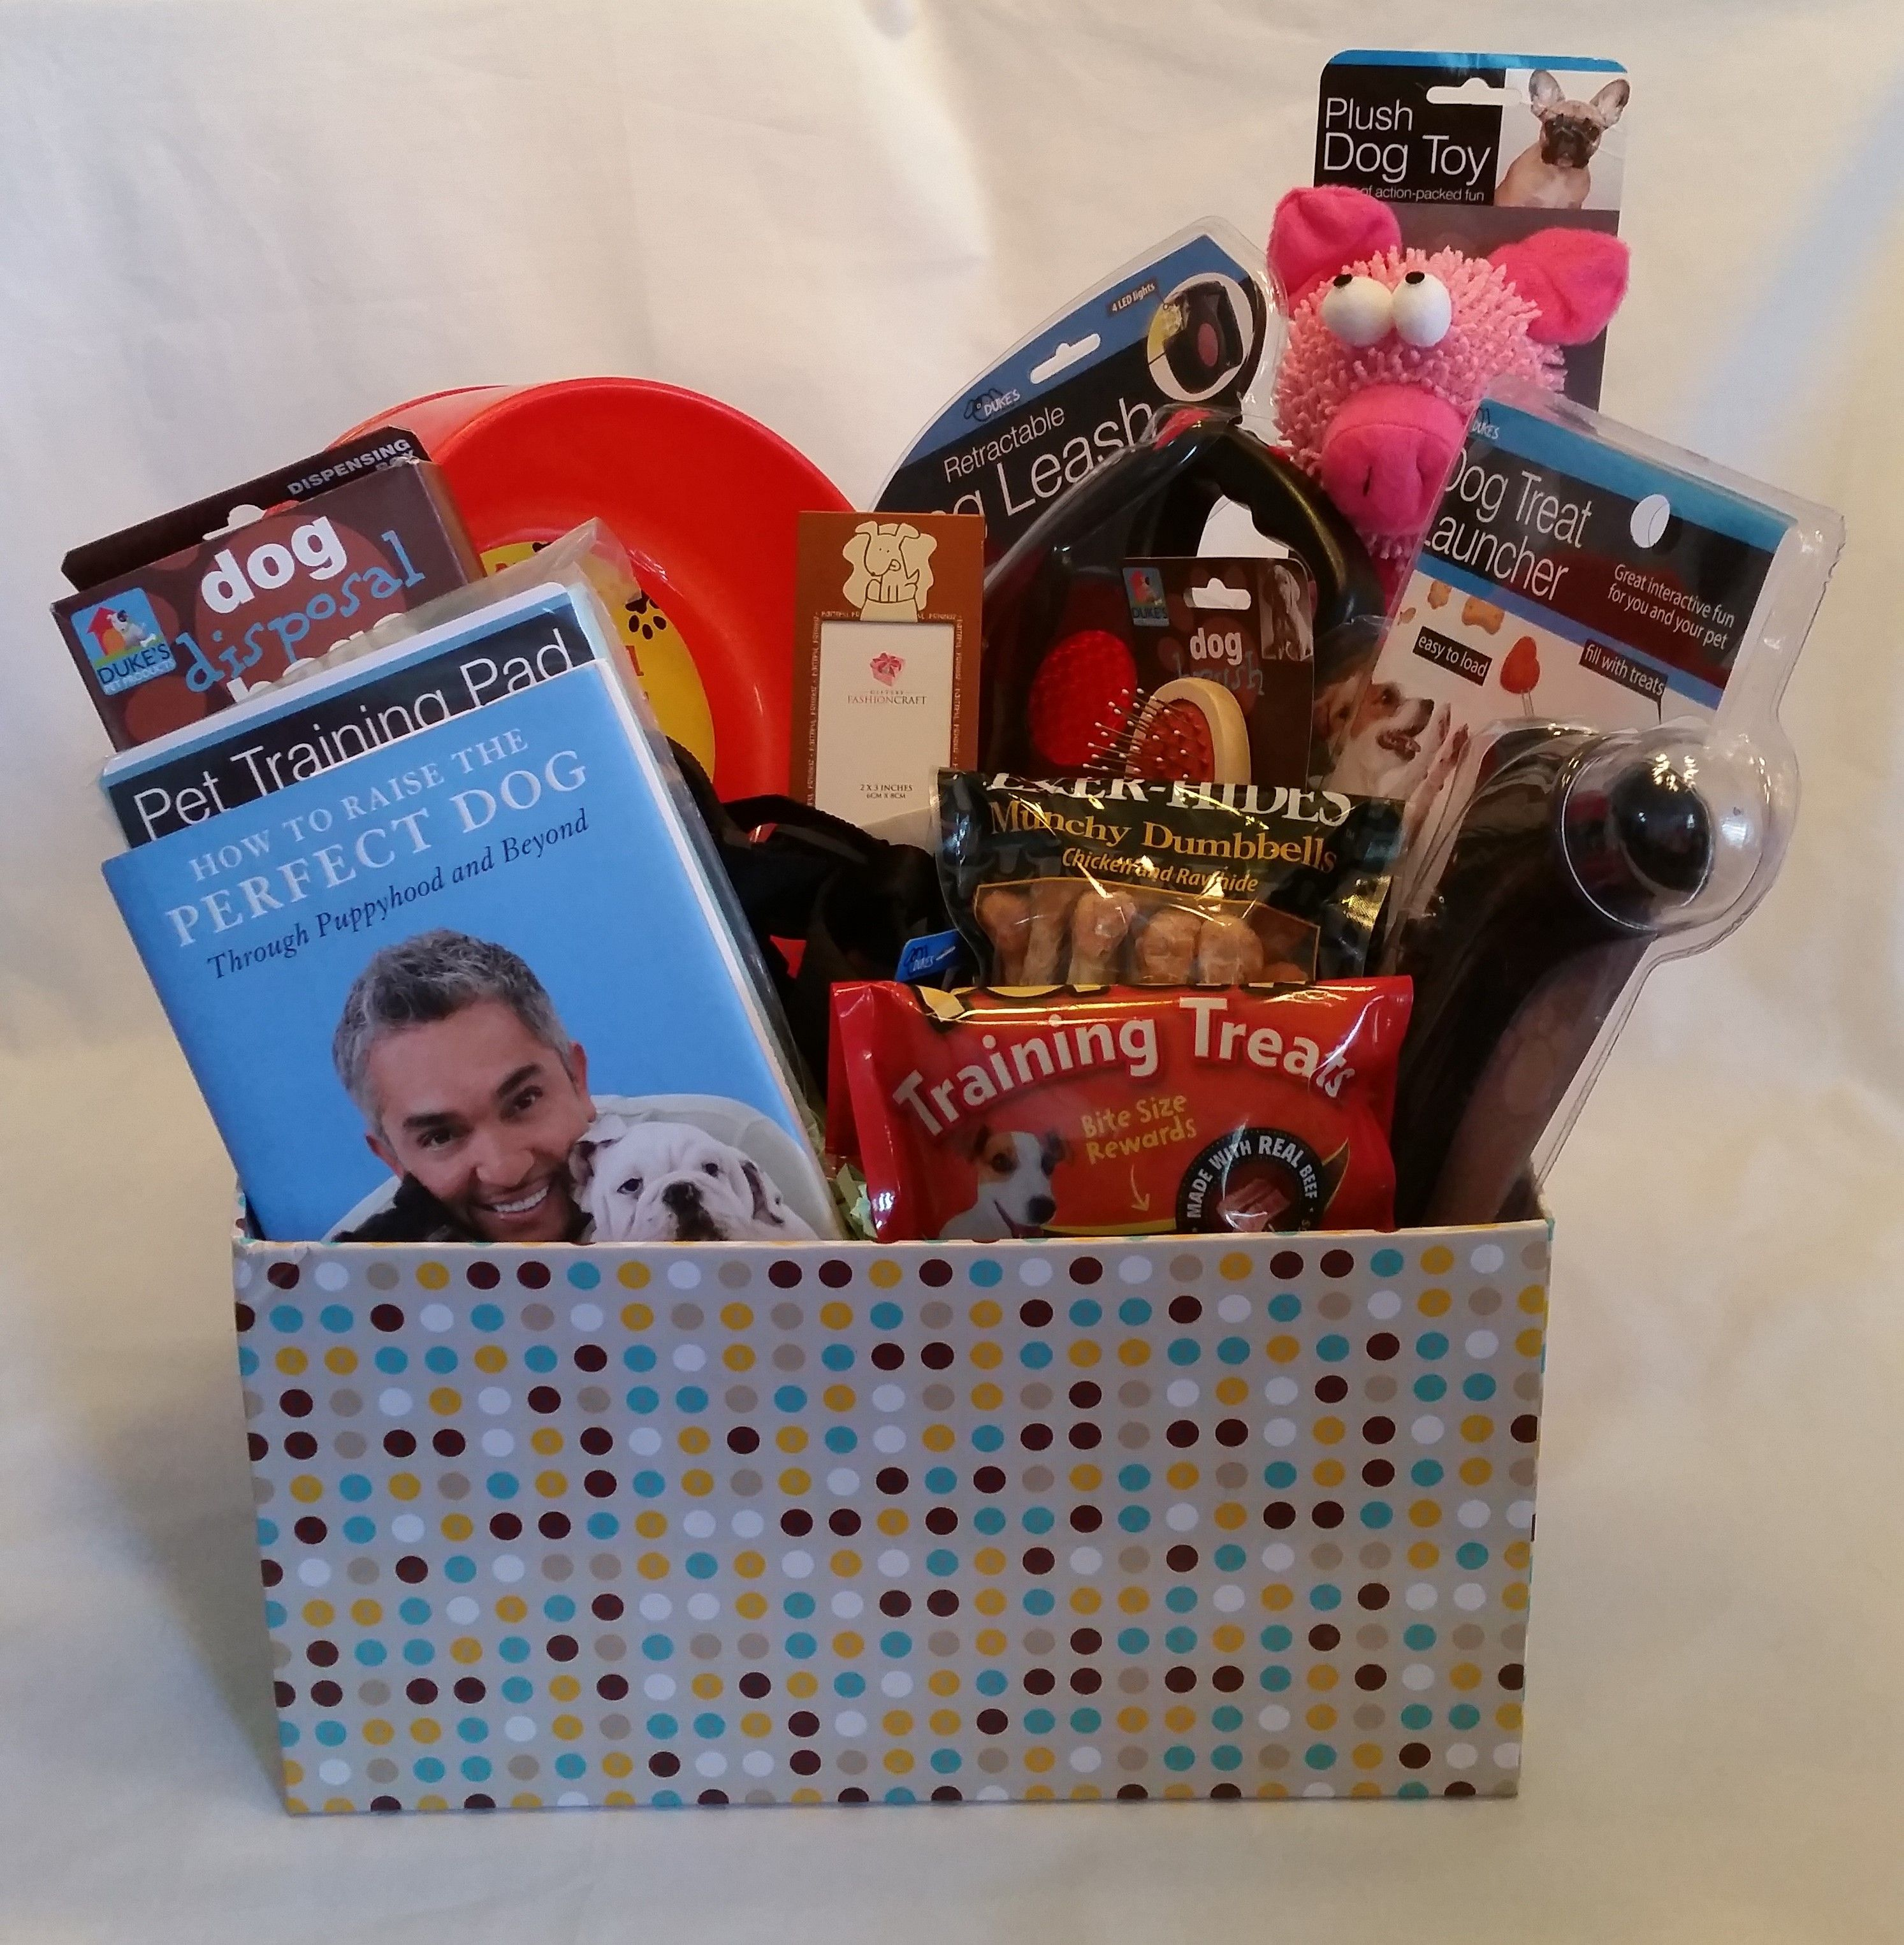 NEW PUPPY GIFT BOX if you are getting a new puppy or know